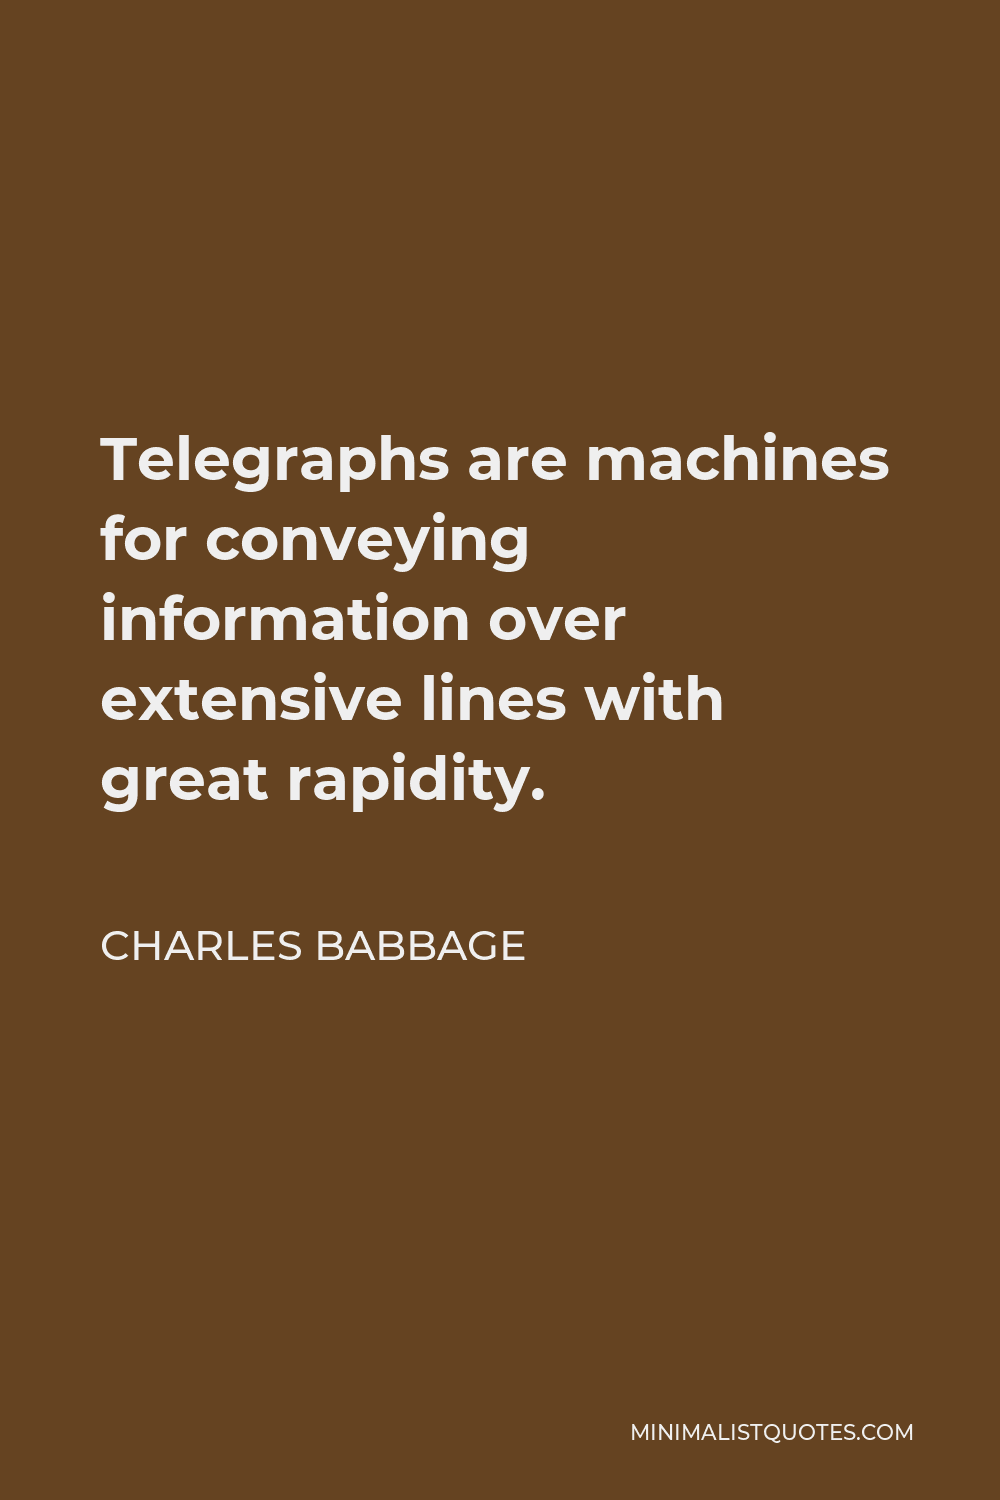 Charles Babbage Quote - Telegraphs are machines for conveying information over extensive lines with great rapidity.